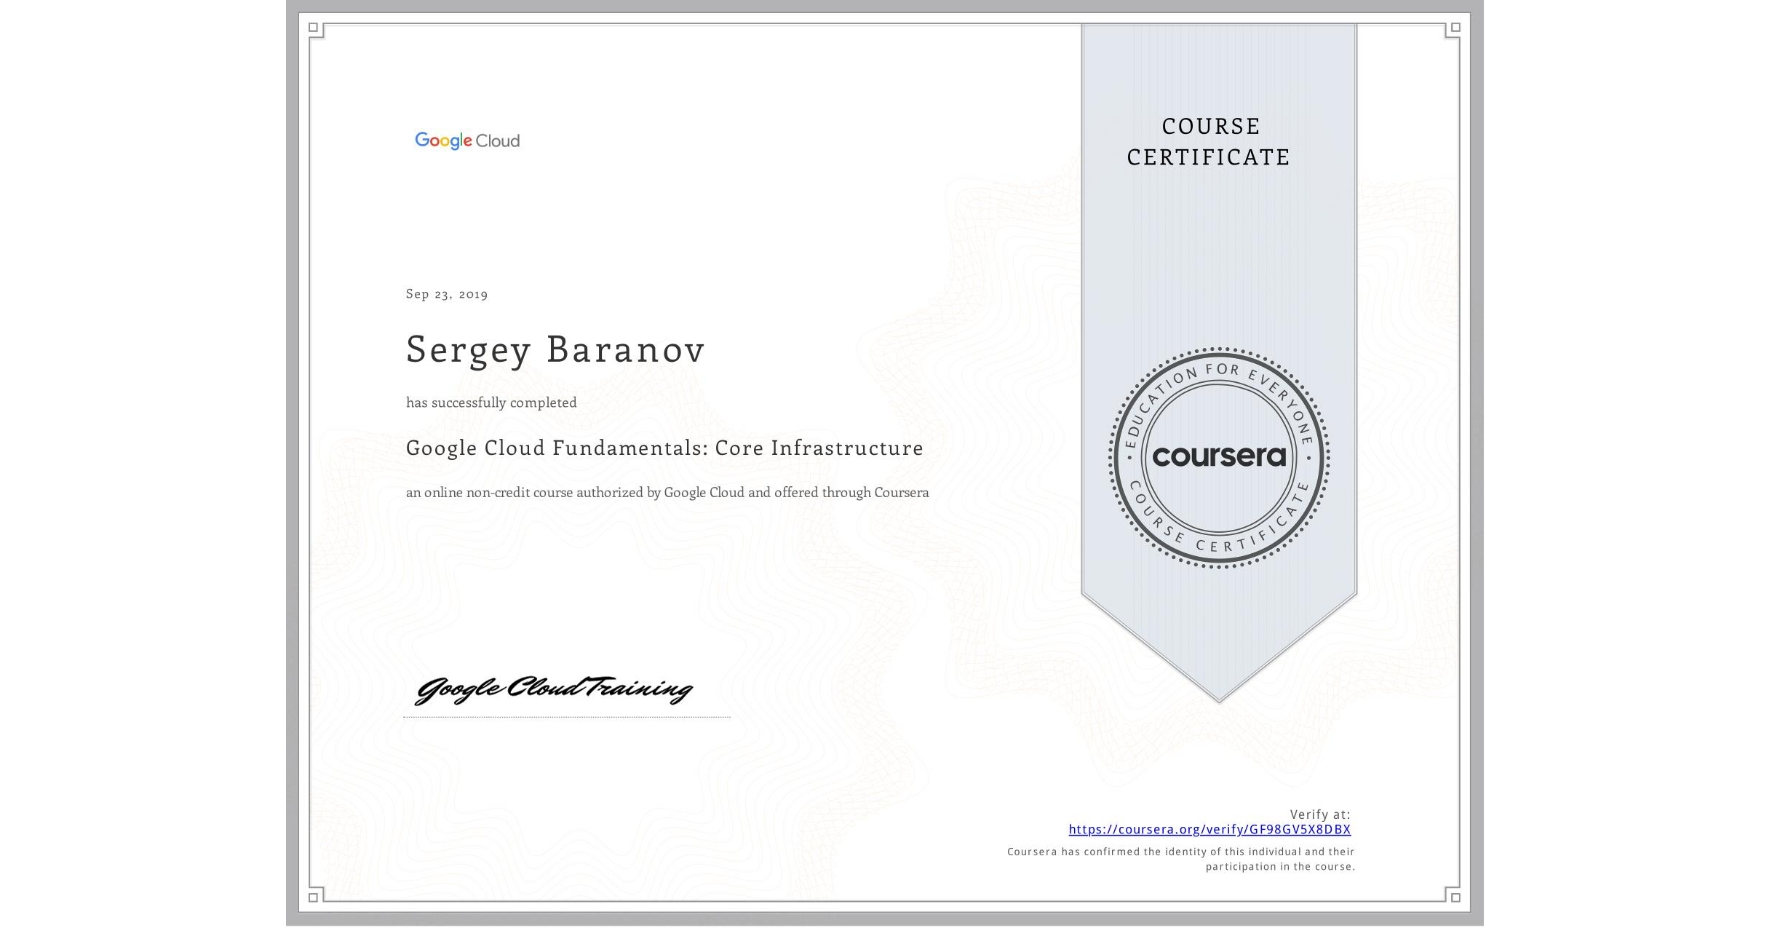 View certificate for Sergey Baranov, Google Cloud Platform Fundamentals: Core Infrastructure, an online non-credit course authorized by Google Cloud and offered through Coursera